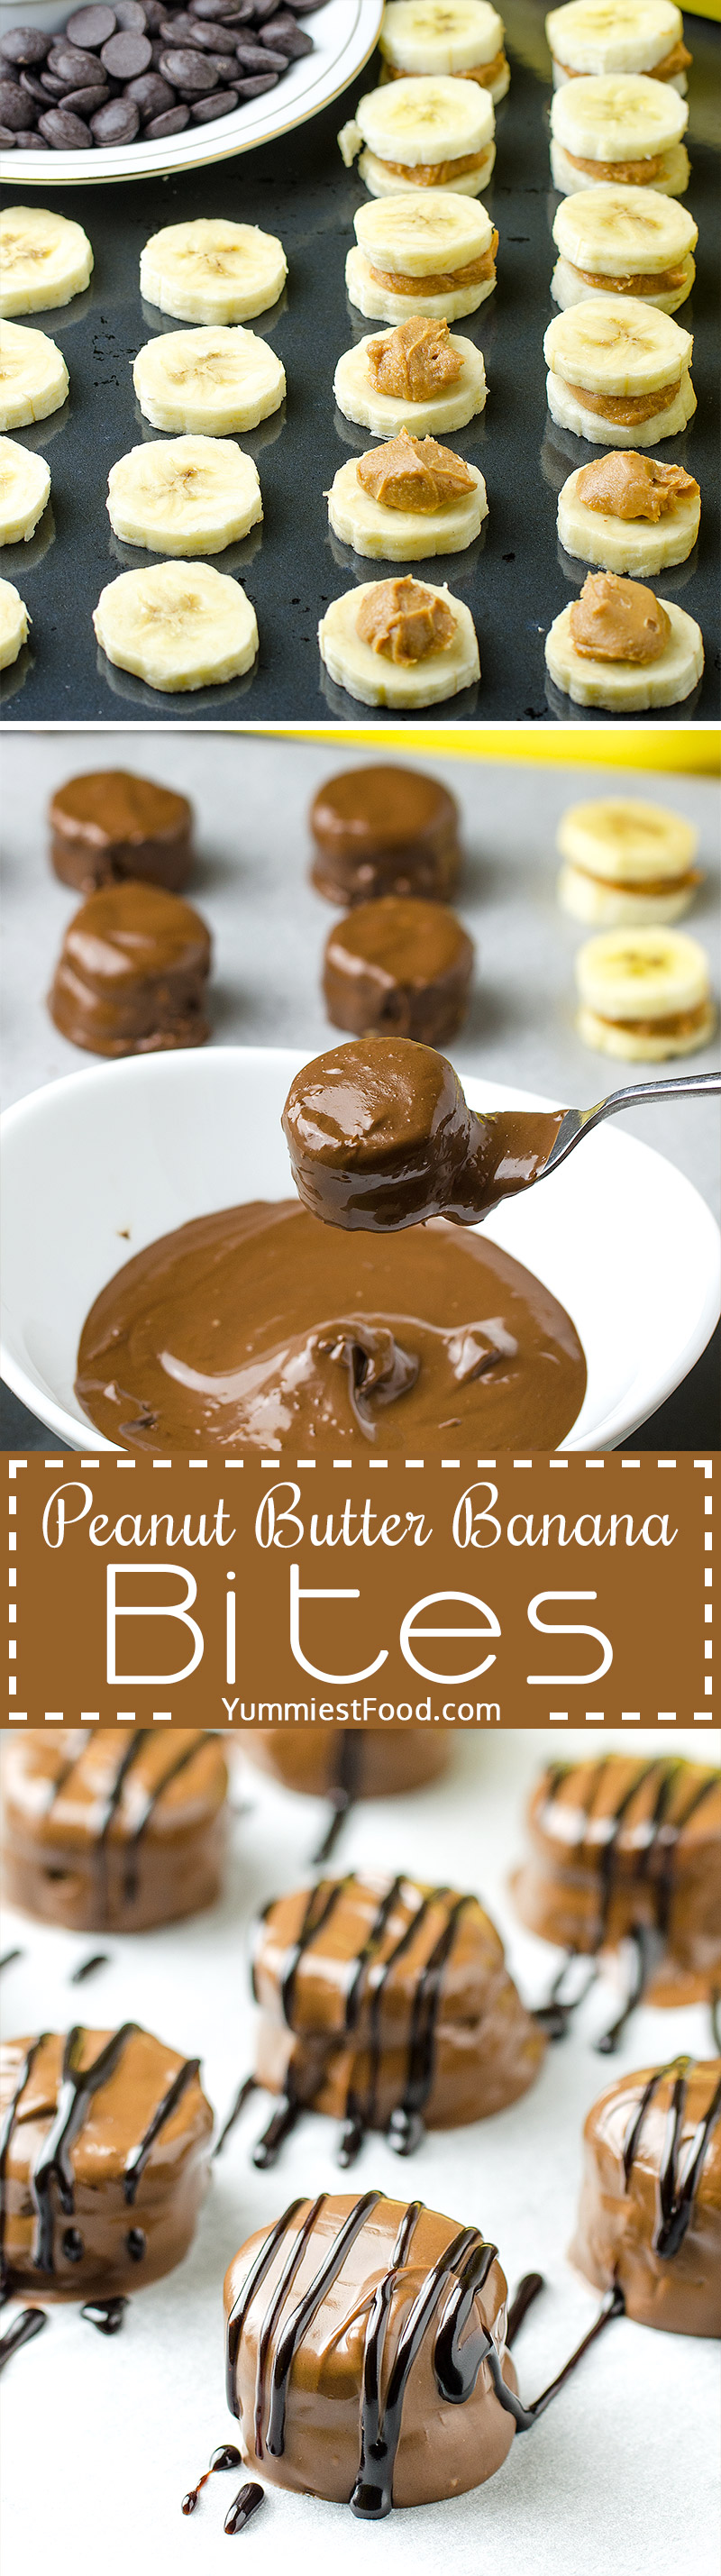 HEALTHY PEANUT BUTTER BANANA BITES - These Healthy Peanut Butter Banana Bites are so delicious and you need just three ingredients to make them